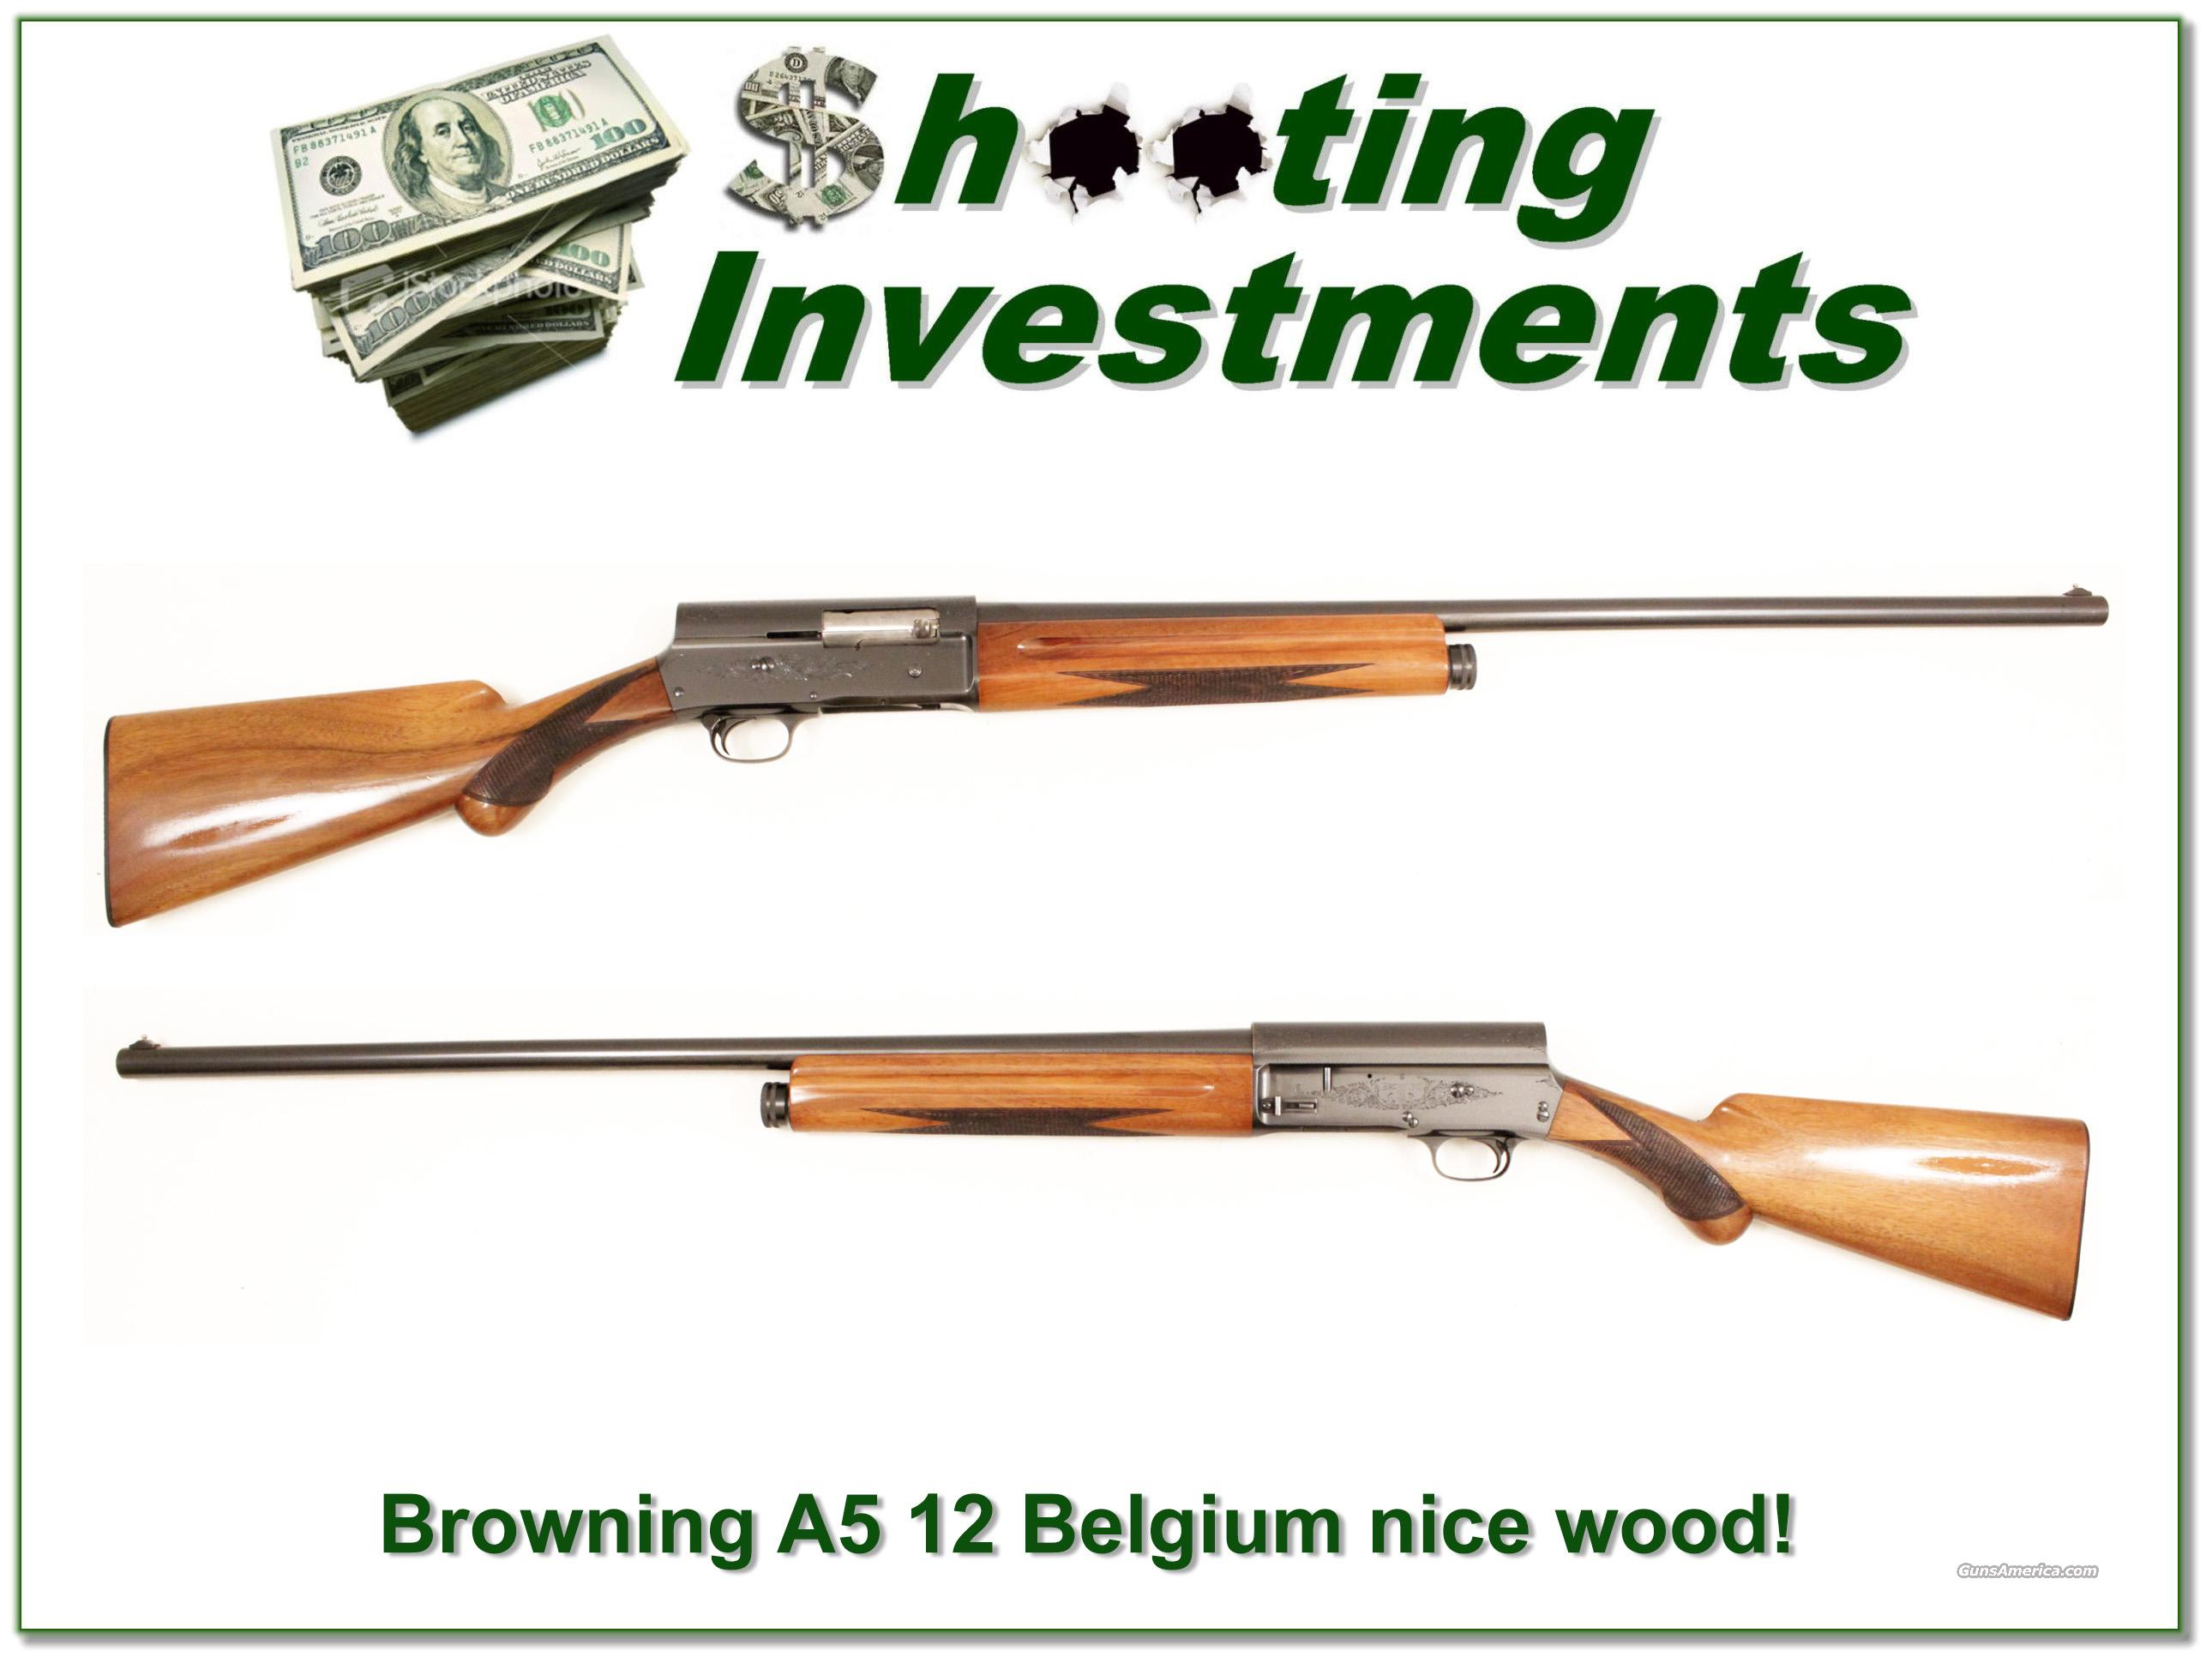 Browning A5 12 gauge 56 Belgium blond wood  Guns > Shotguns > Browning Shotguns > Autoloaders > Hunting